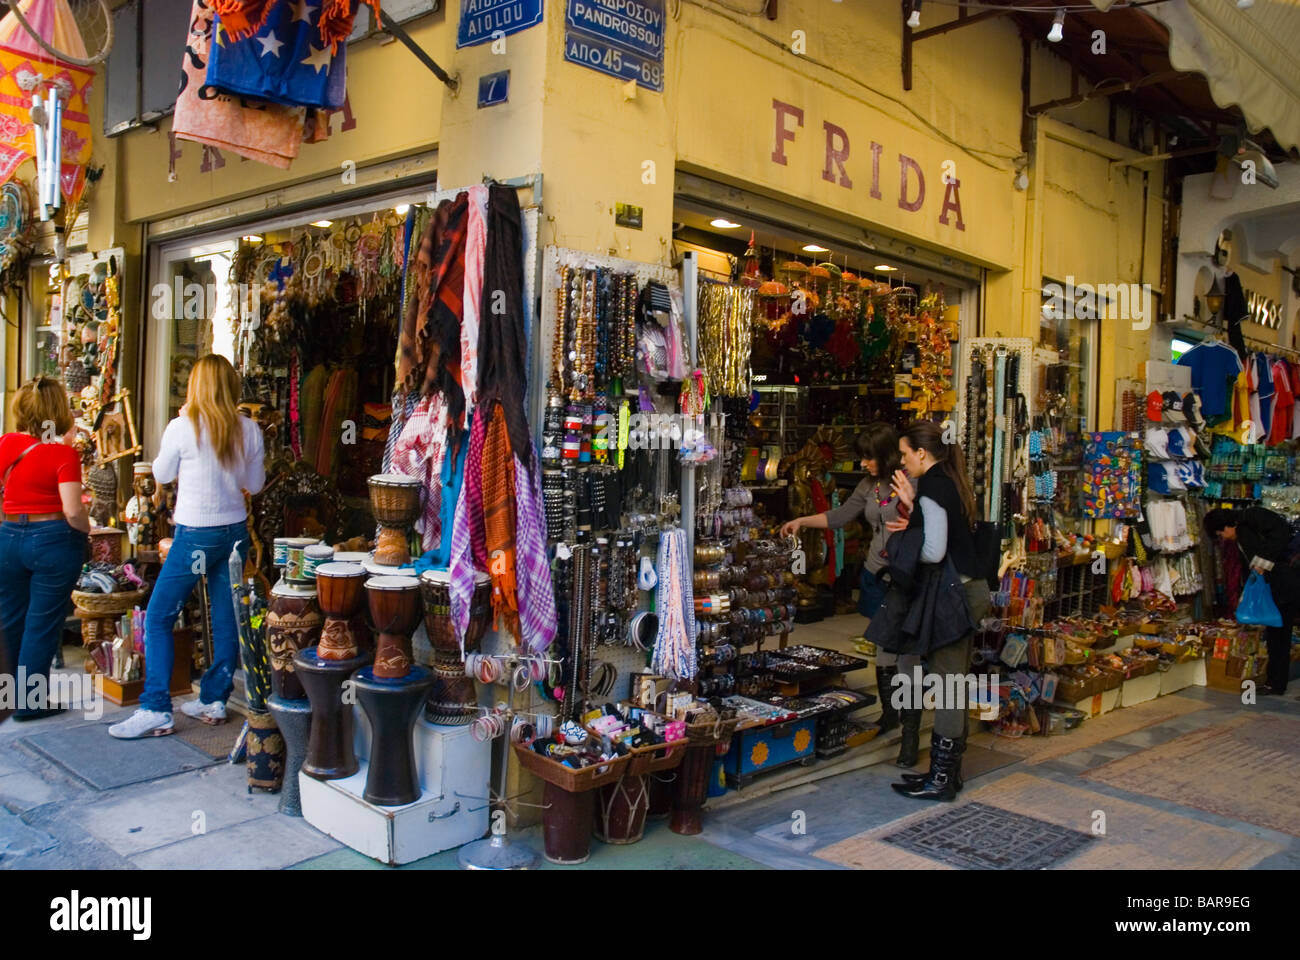 Gift and souvenir shop along Pandrossol pedestrian street in Monastiraki district of central Athens Greece Europe - Stock Image